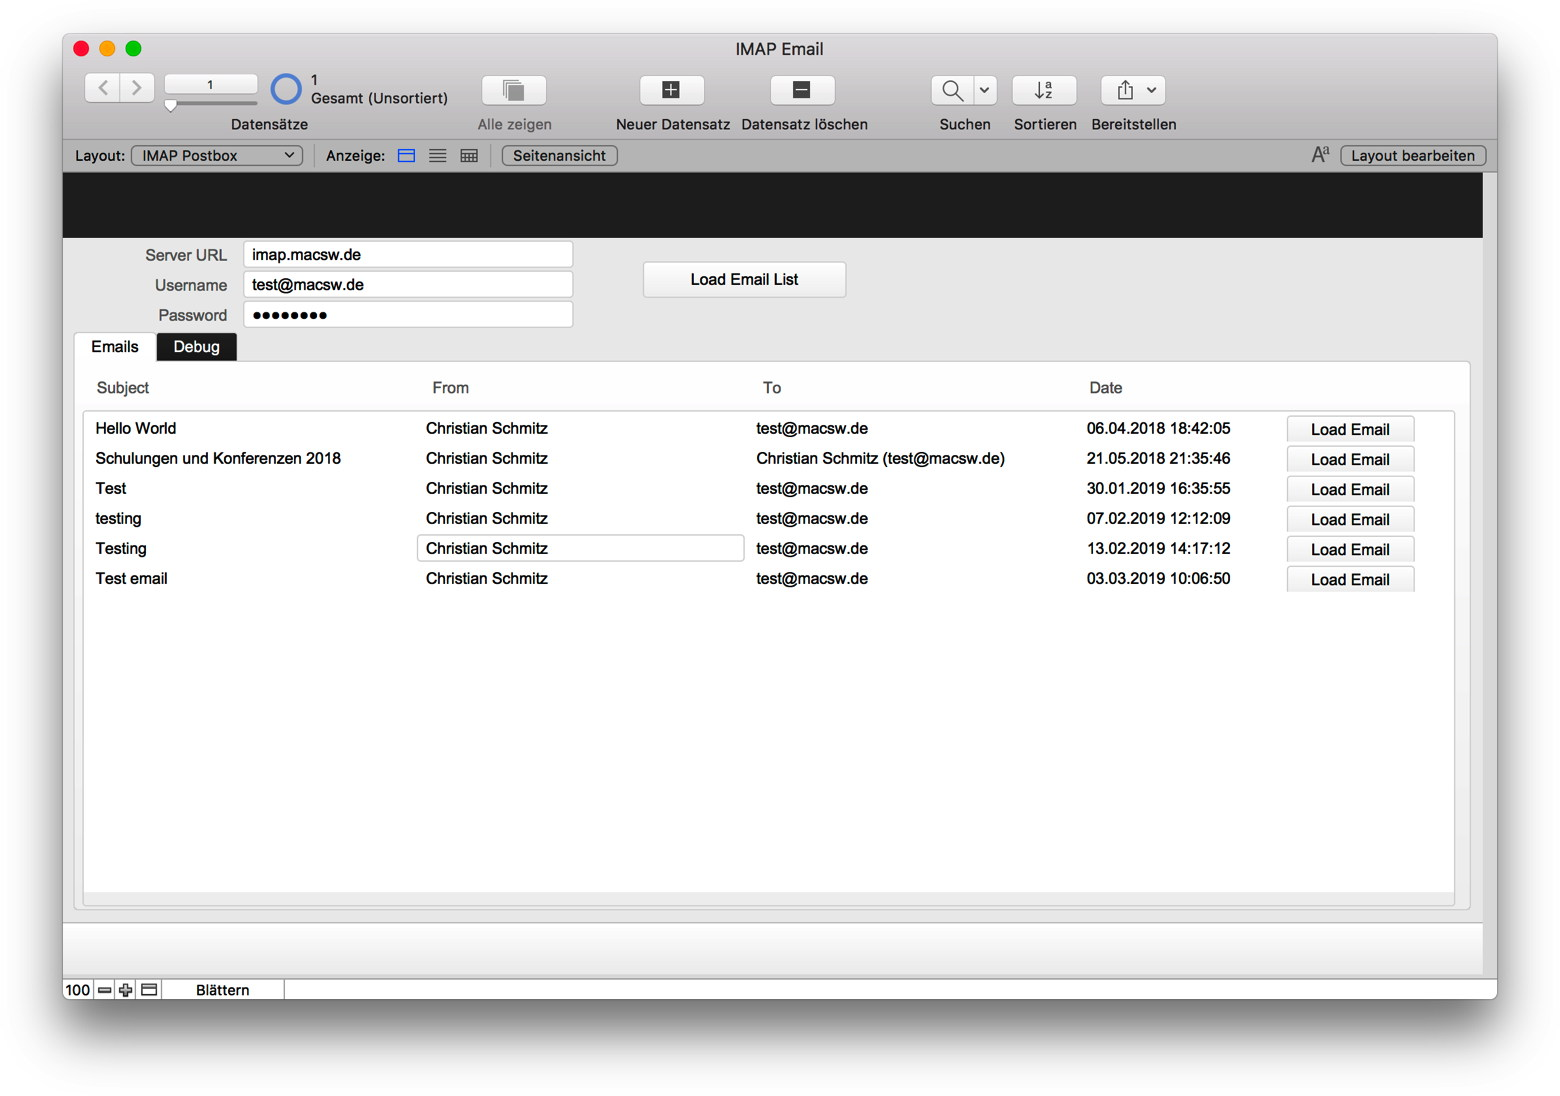 MBS Blog - Newer IMAP Email example for FileMaker